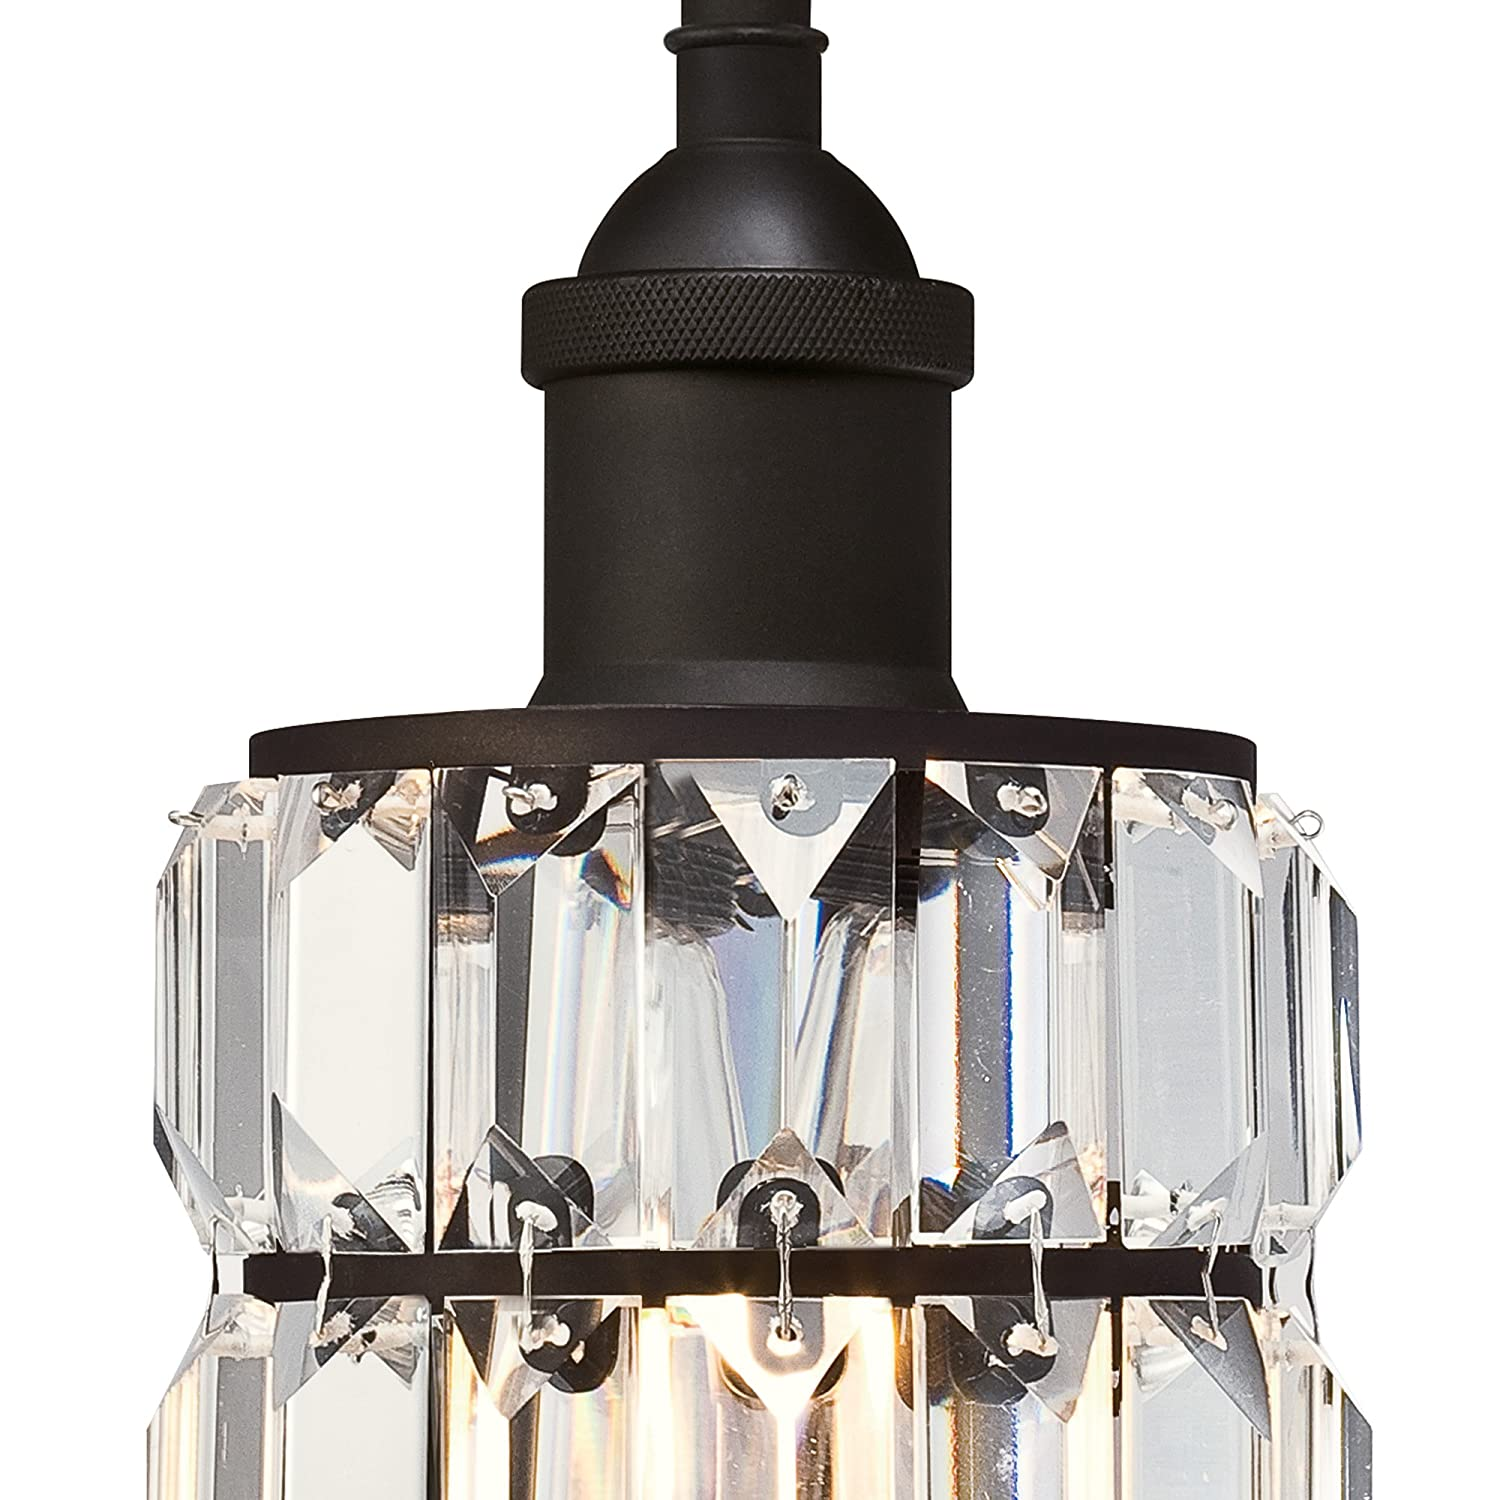 Westinghouse Lighting 6337500 Sophie One-Light Indoor Wall Fixture Oil Rubbed Bronze Finish with Crystal Prism Glass